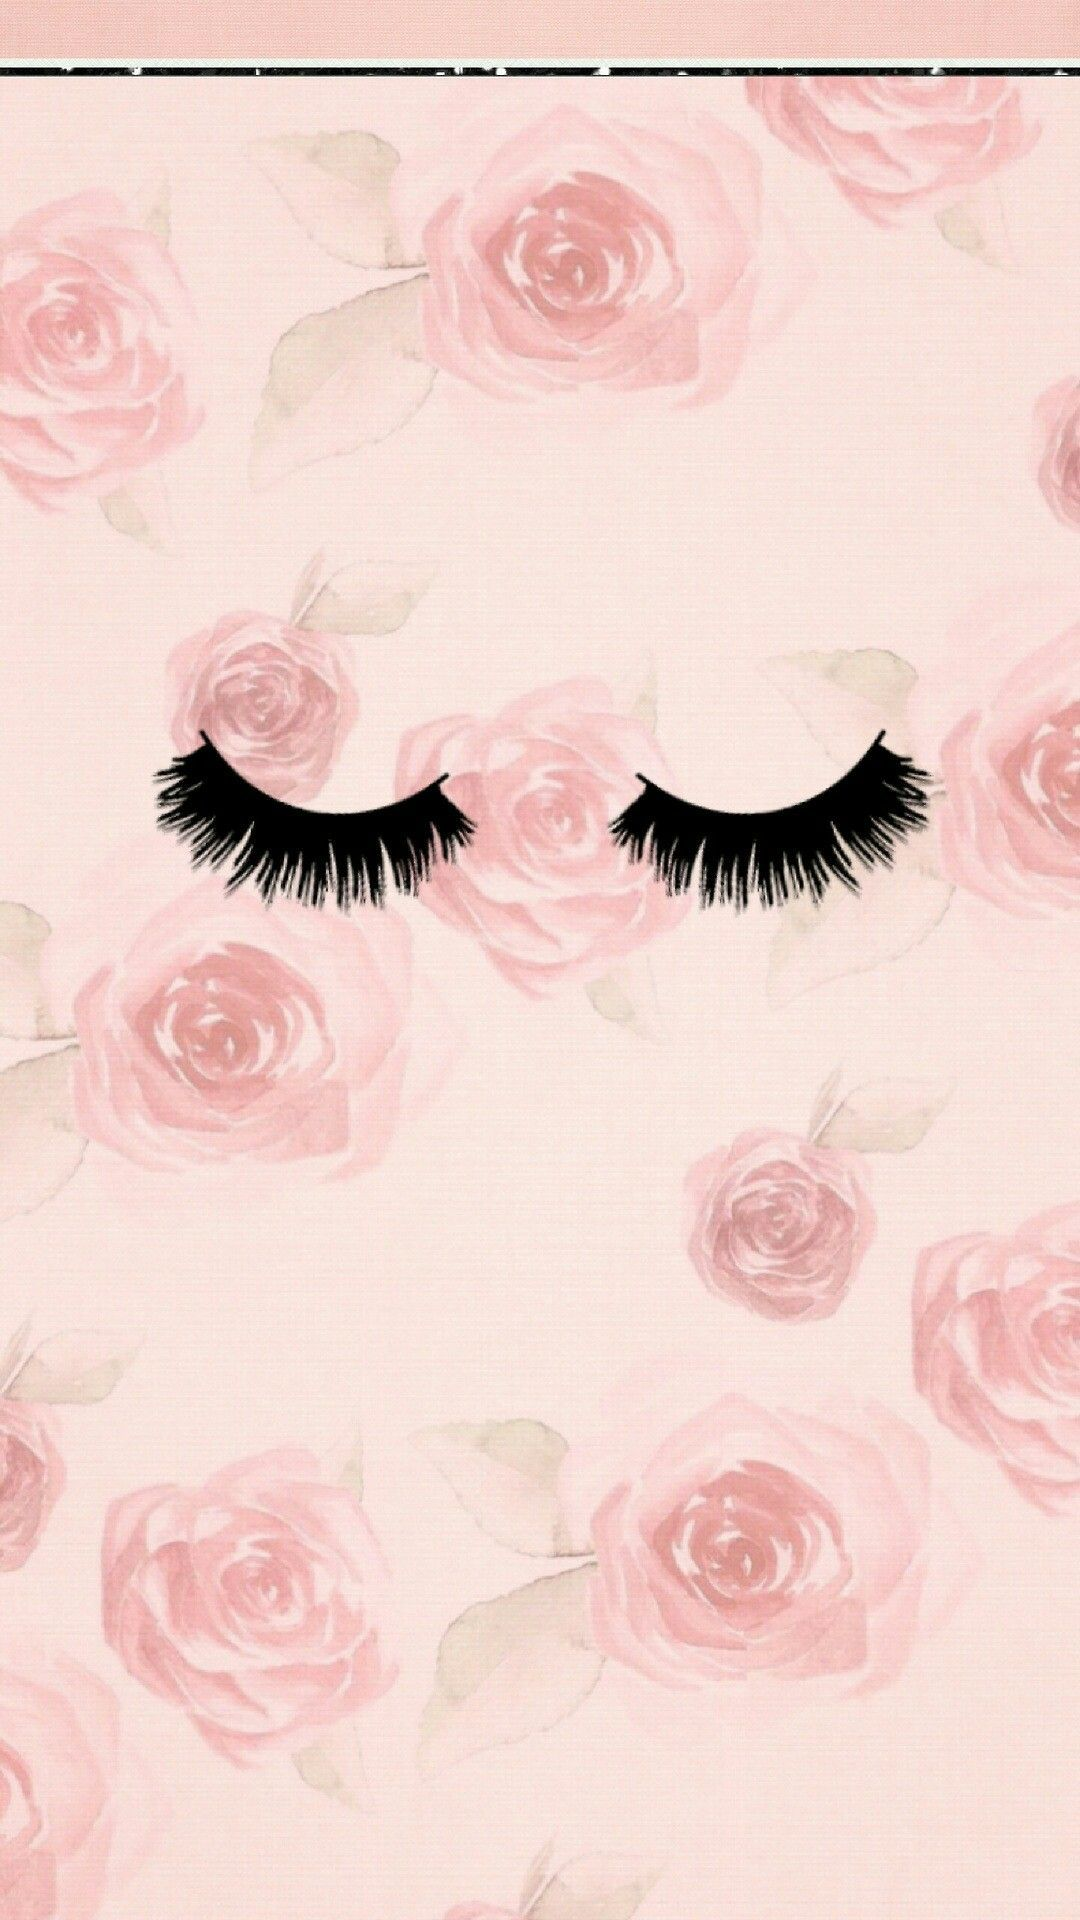 1080x1920 Pinkblushcakes | A Vintage, Girly & Rosy Blog!... By Artist ...